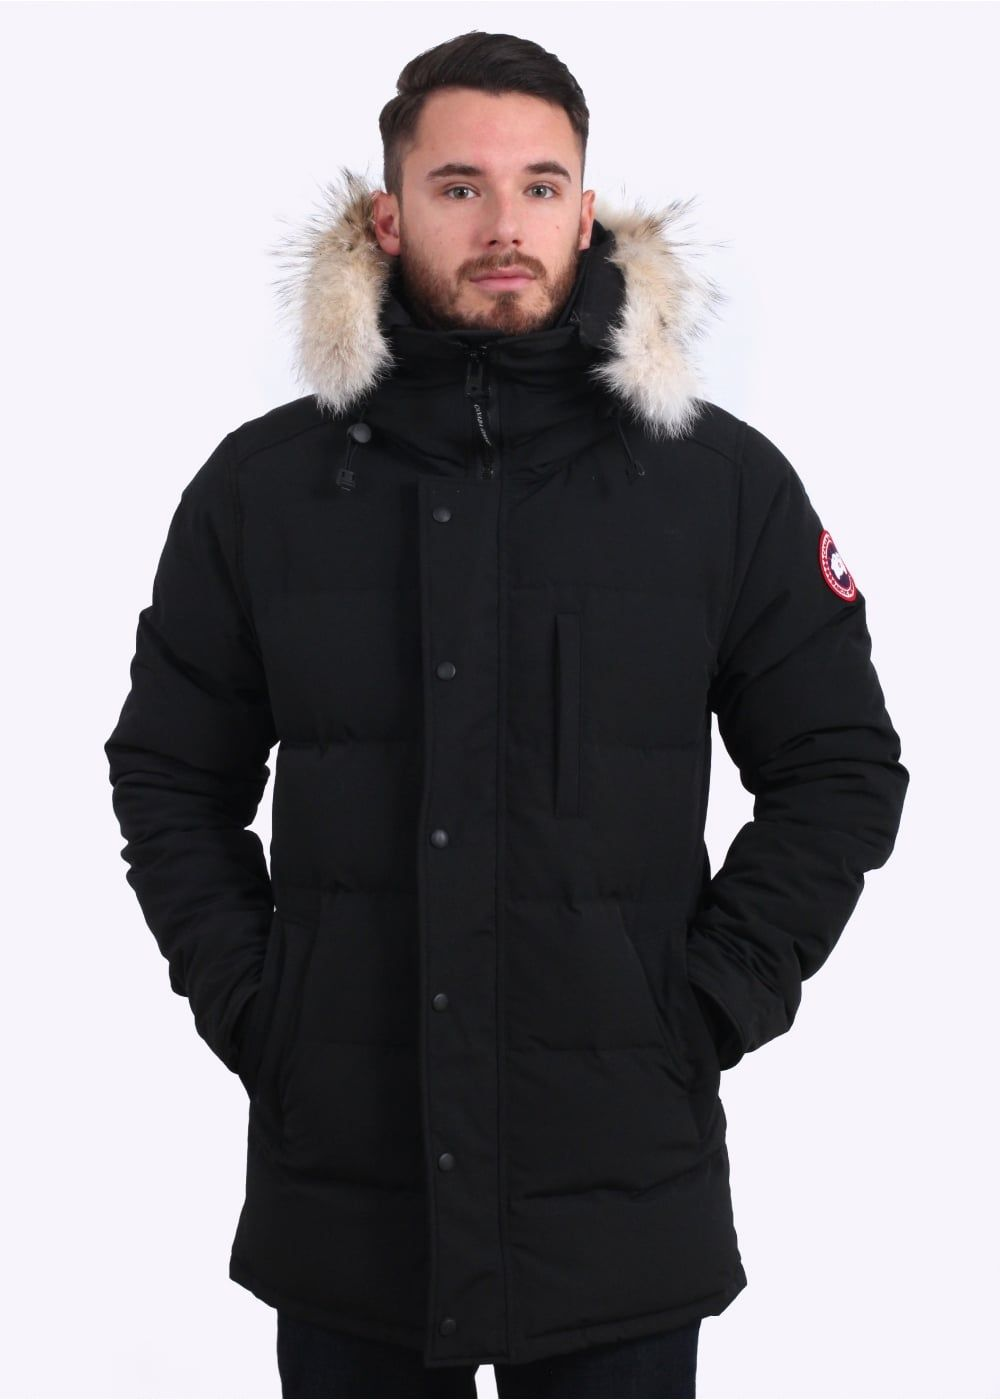 Canadagoose 99 On Winter Outfits Men Canada Goose Mens Parka